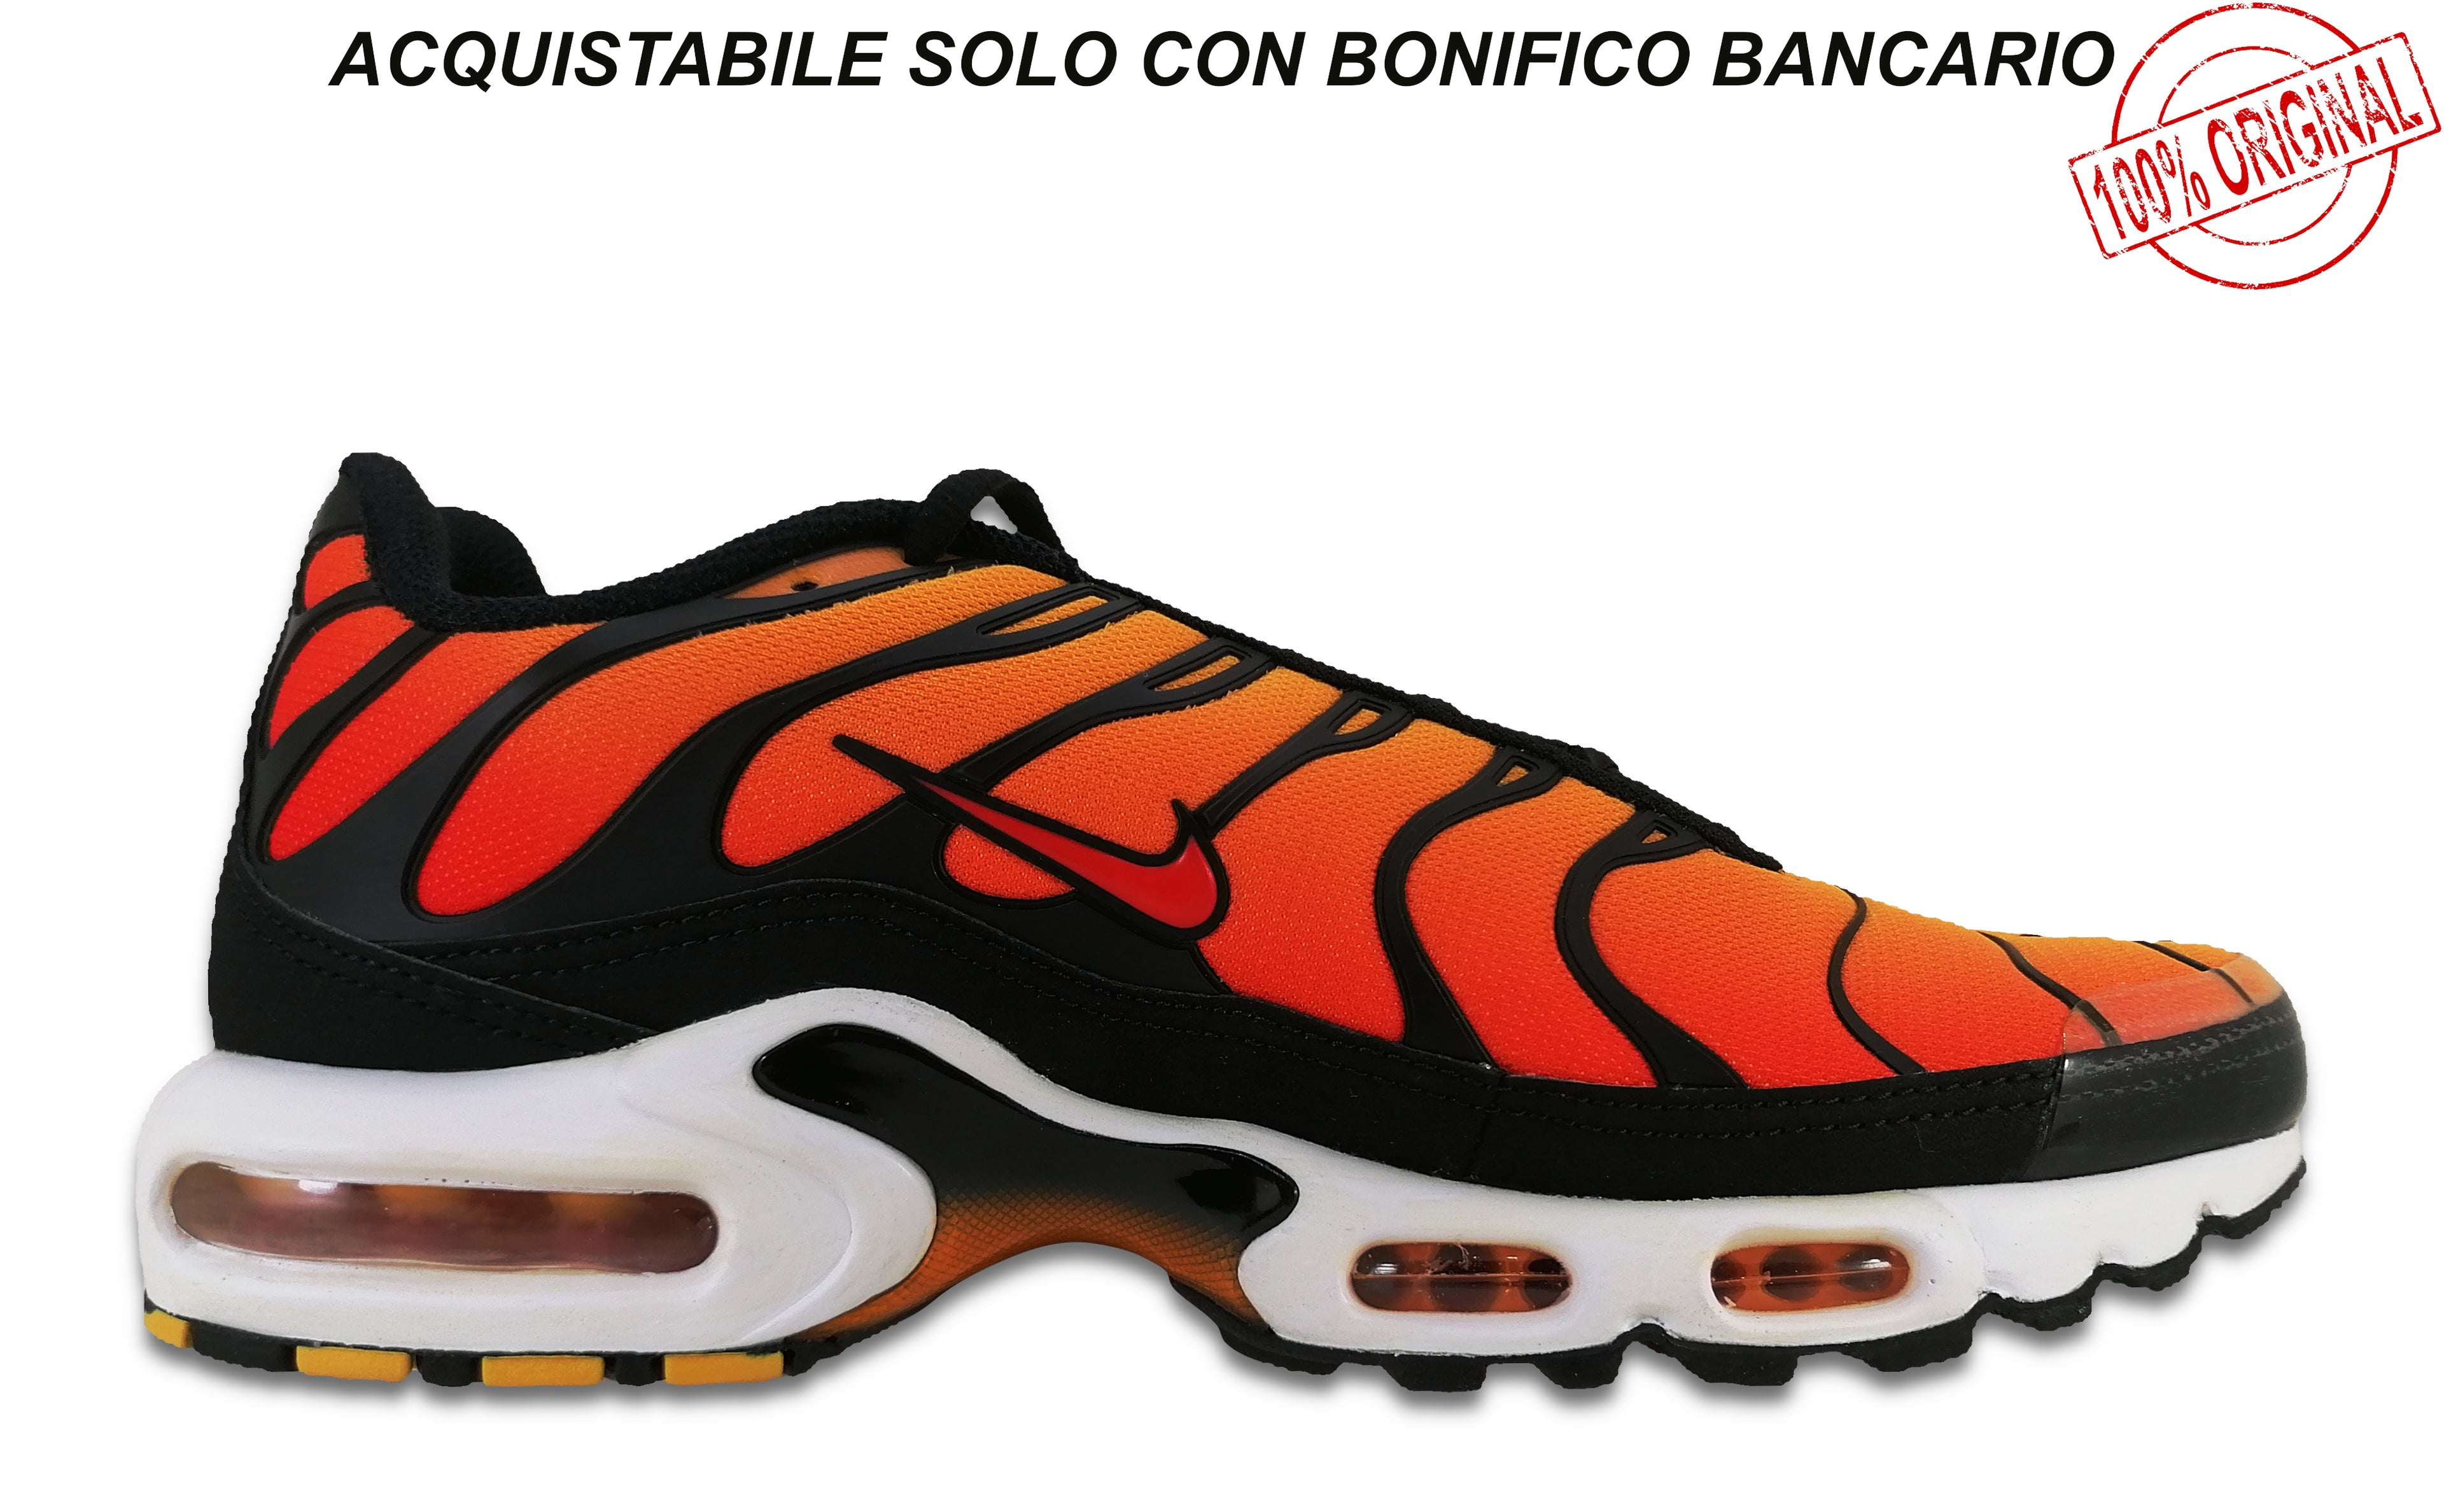 Nike Air Max Plus Tn Sunset BQ4629-001